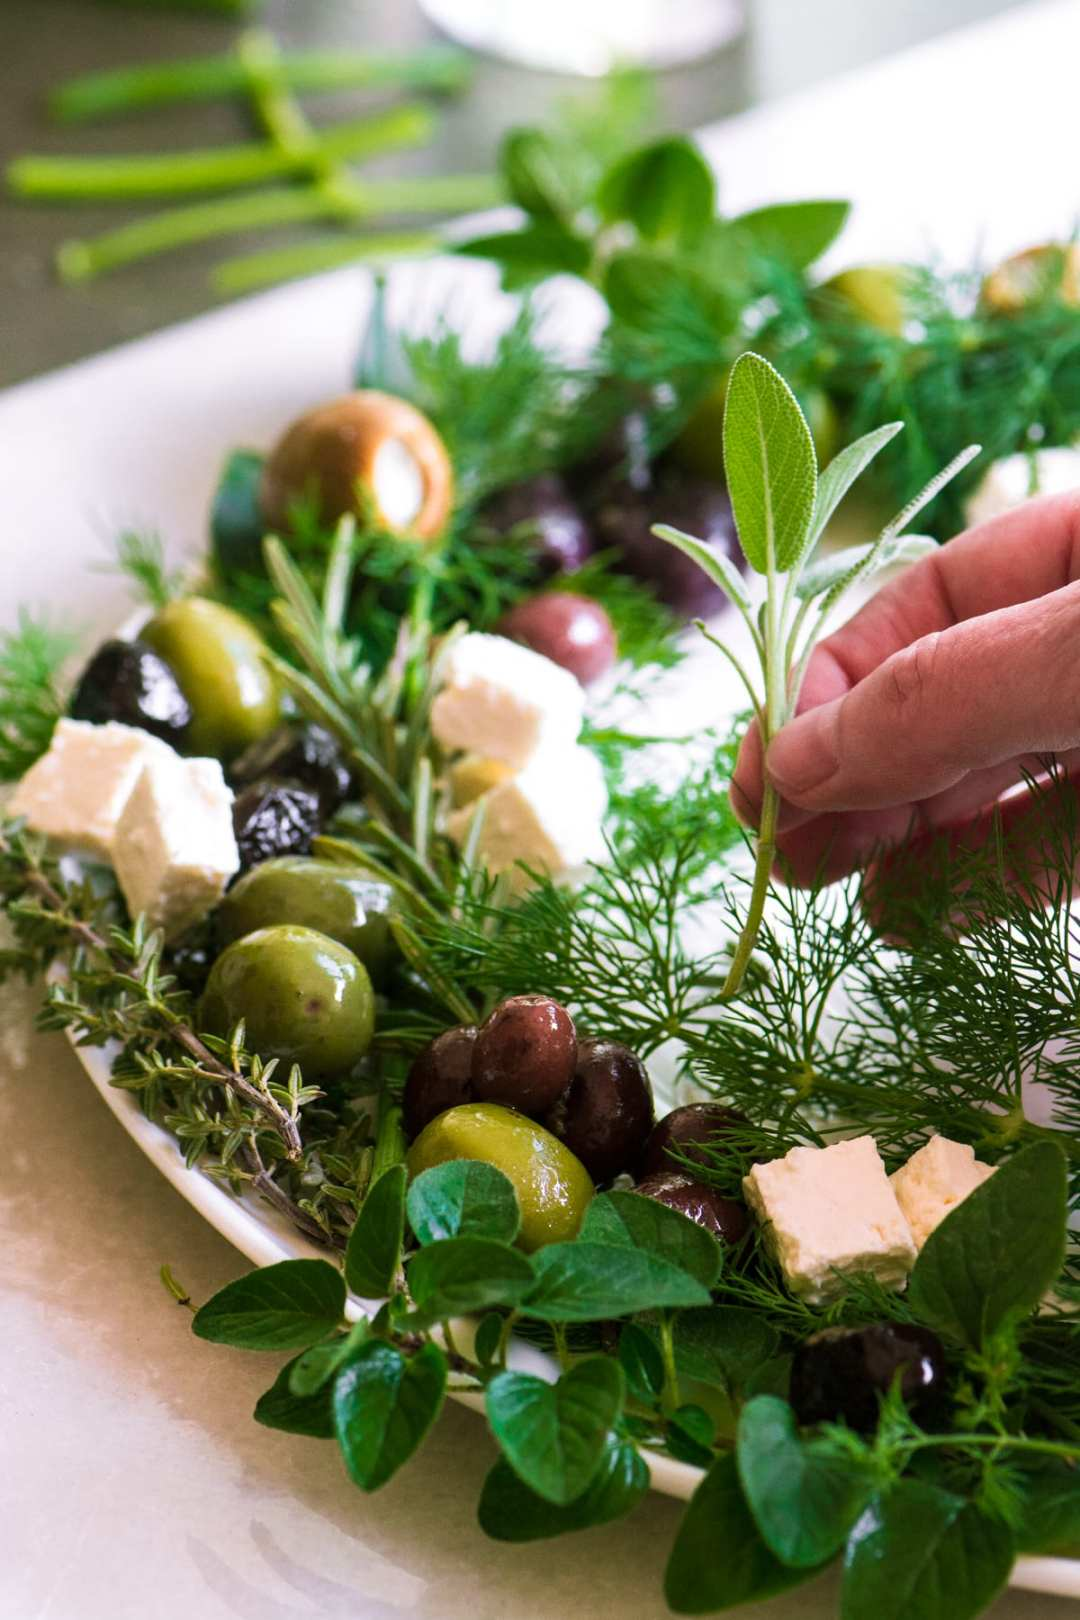 Adding herbs to an Olive and Herb Wreath